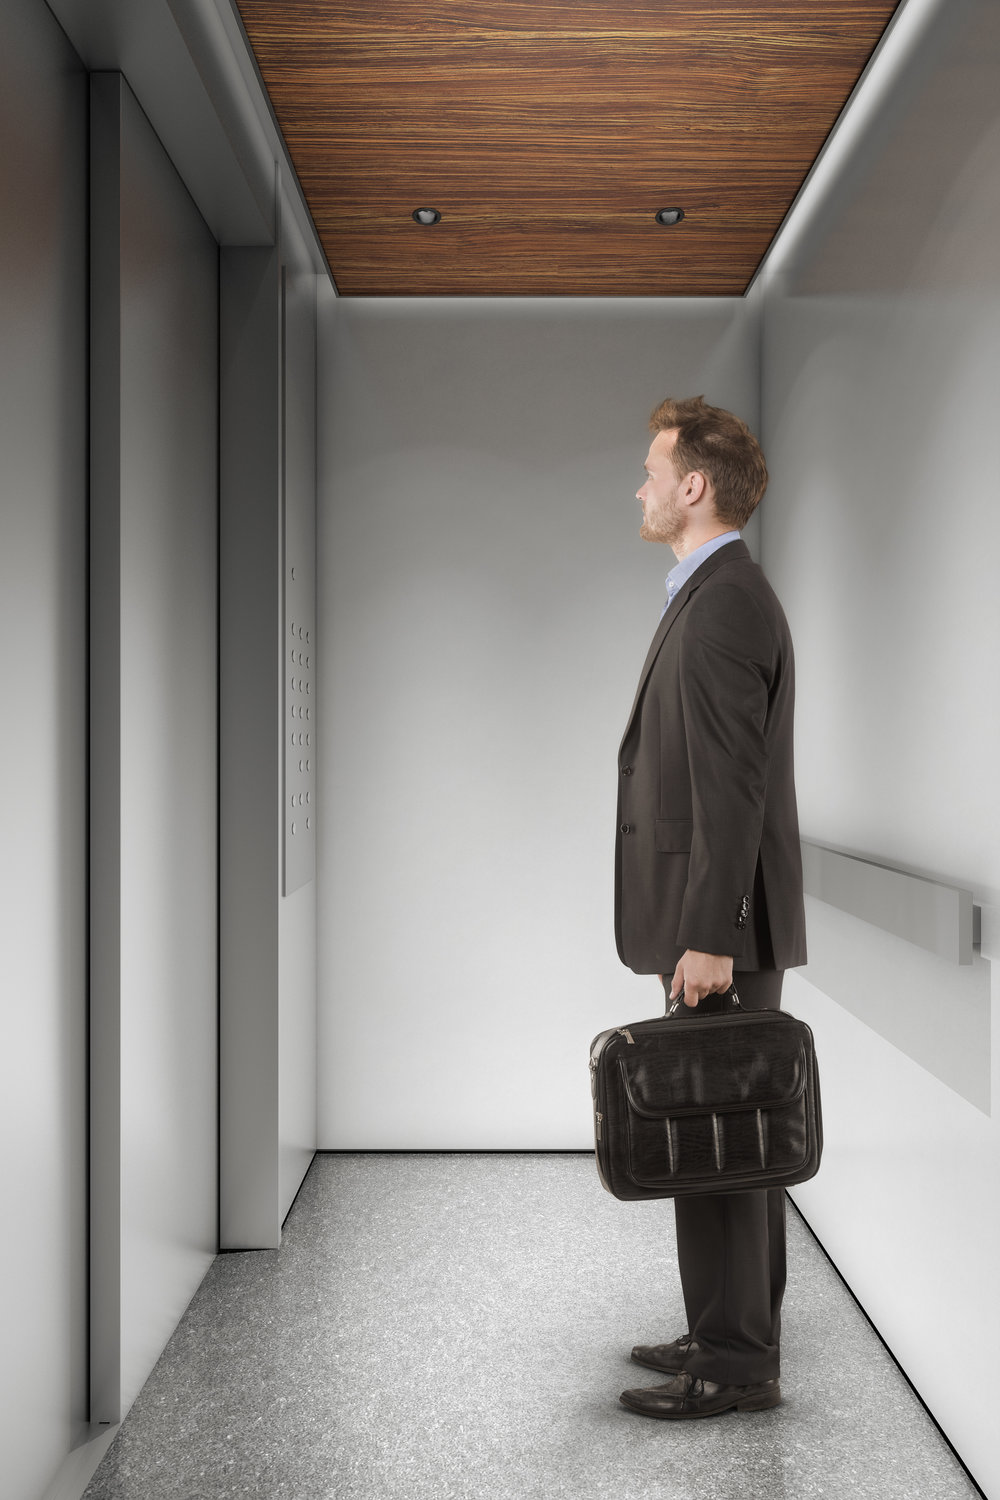 Man staring at the elevator doors as he waits to arrive on the right floor. MEP provided by 2LS Consulting Engineering.